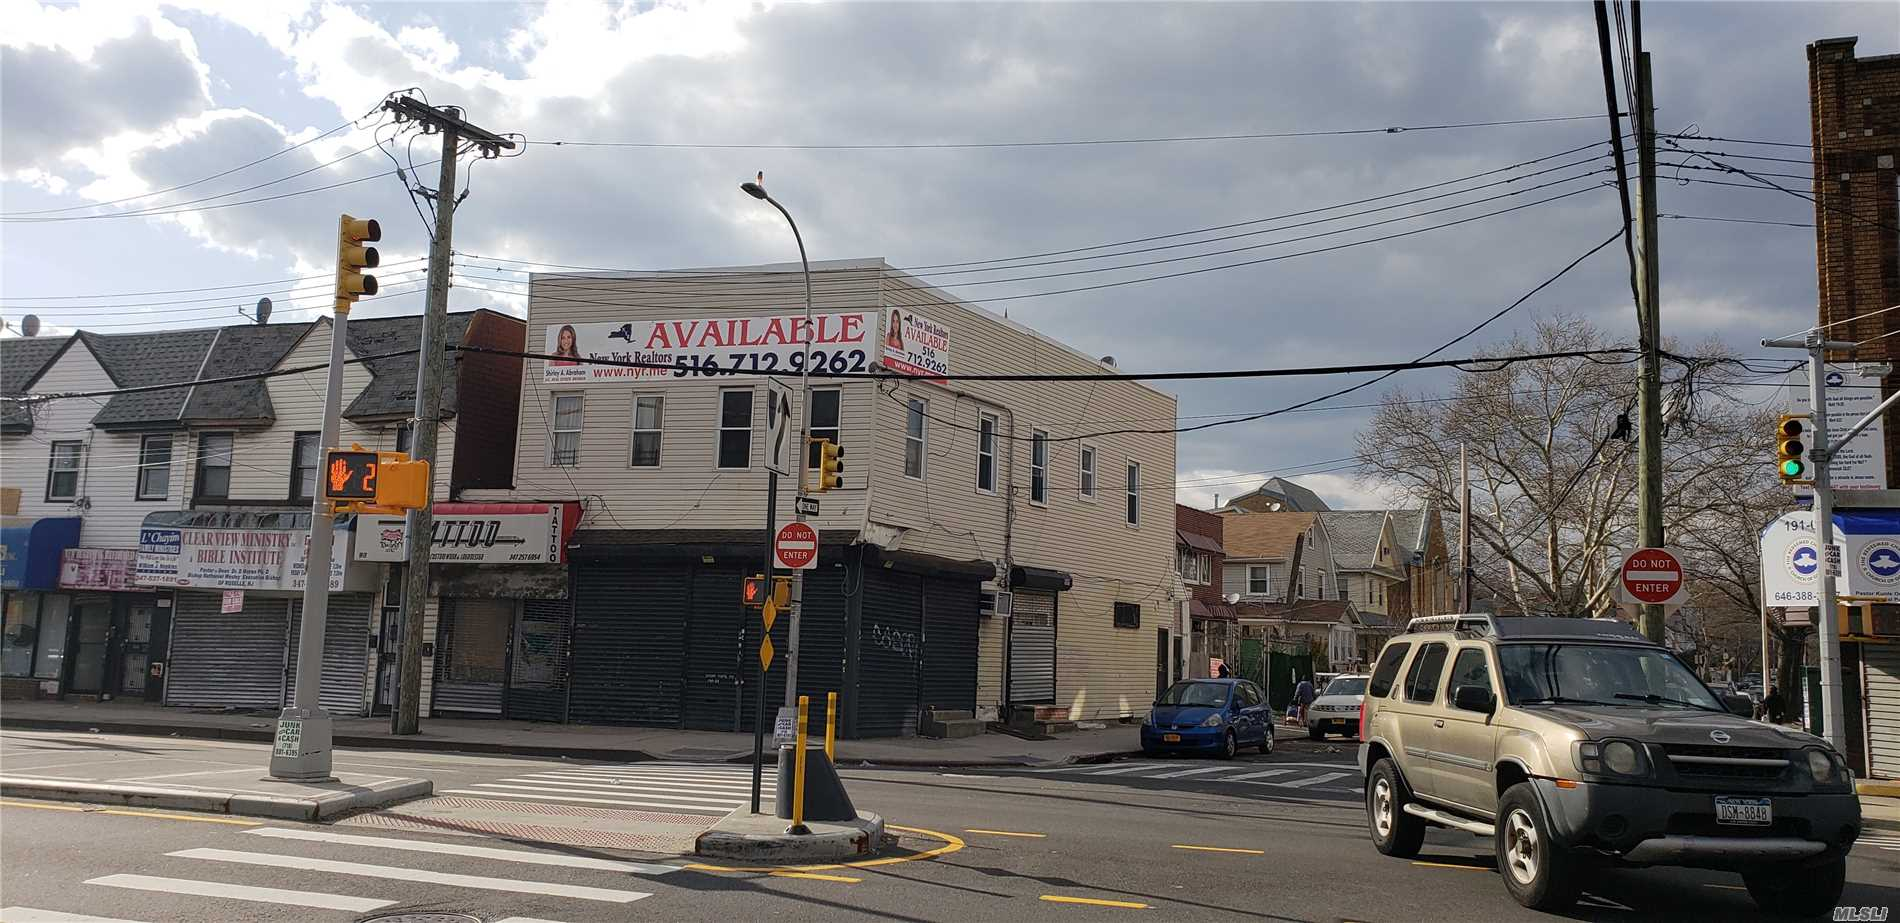 Very Rare Find In Queens Perfect Corner Location For A Bank Or Large Food Franchise, Dunkin Donuts, Dollar Store, Popeyes, Kentucky Fried Chicken, 7-11, 12 Car Parking In Back For Additional Cost At $200.00 Per Spot. First Year Rent $4000.00 Per Month Second Year Rent $4500.00 Third Year Rent $5000.00 And There After A 5% Increase Per Annum. If Tenant Requires More Space There Is An Additional 1700 Square Feet That Can Be Added To This Space For An Additional Cost, Can Be Negotiated